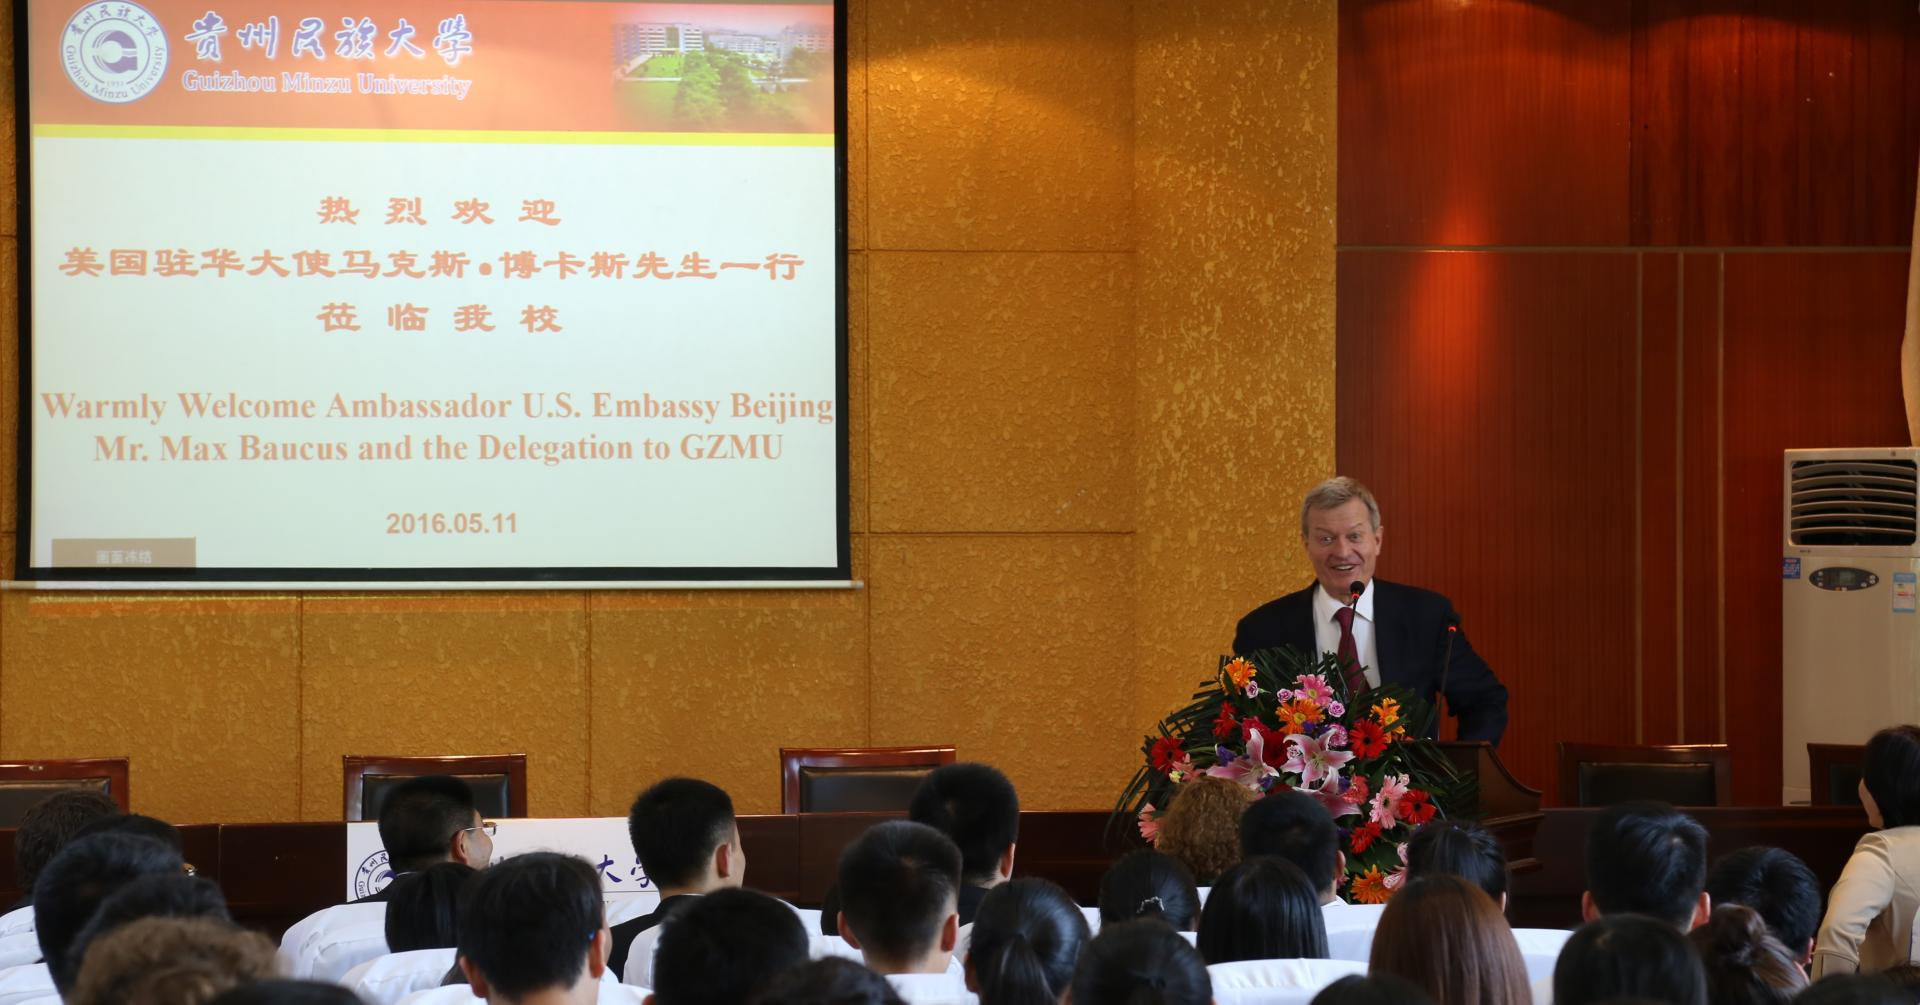 Ambassador U.S. Embassy Beijing Mr. Max Baucus and the Delegation to GZMU